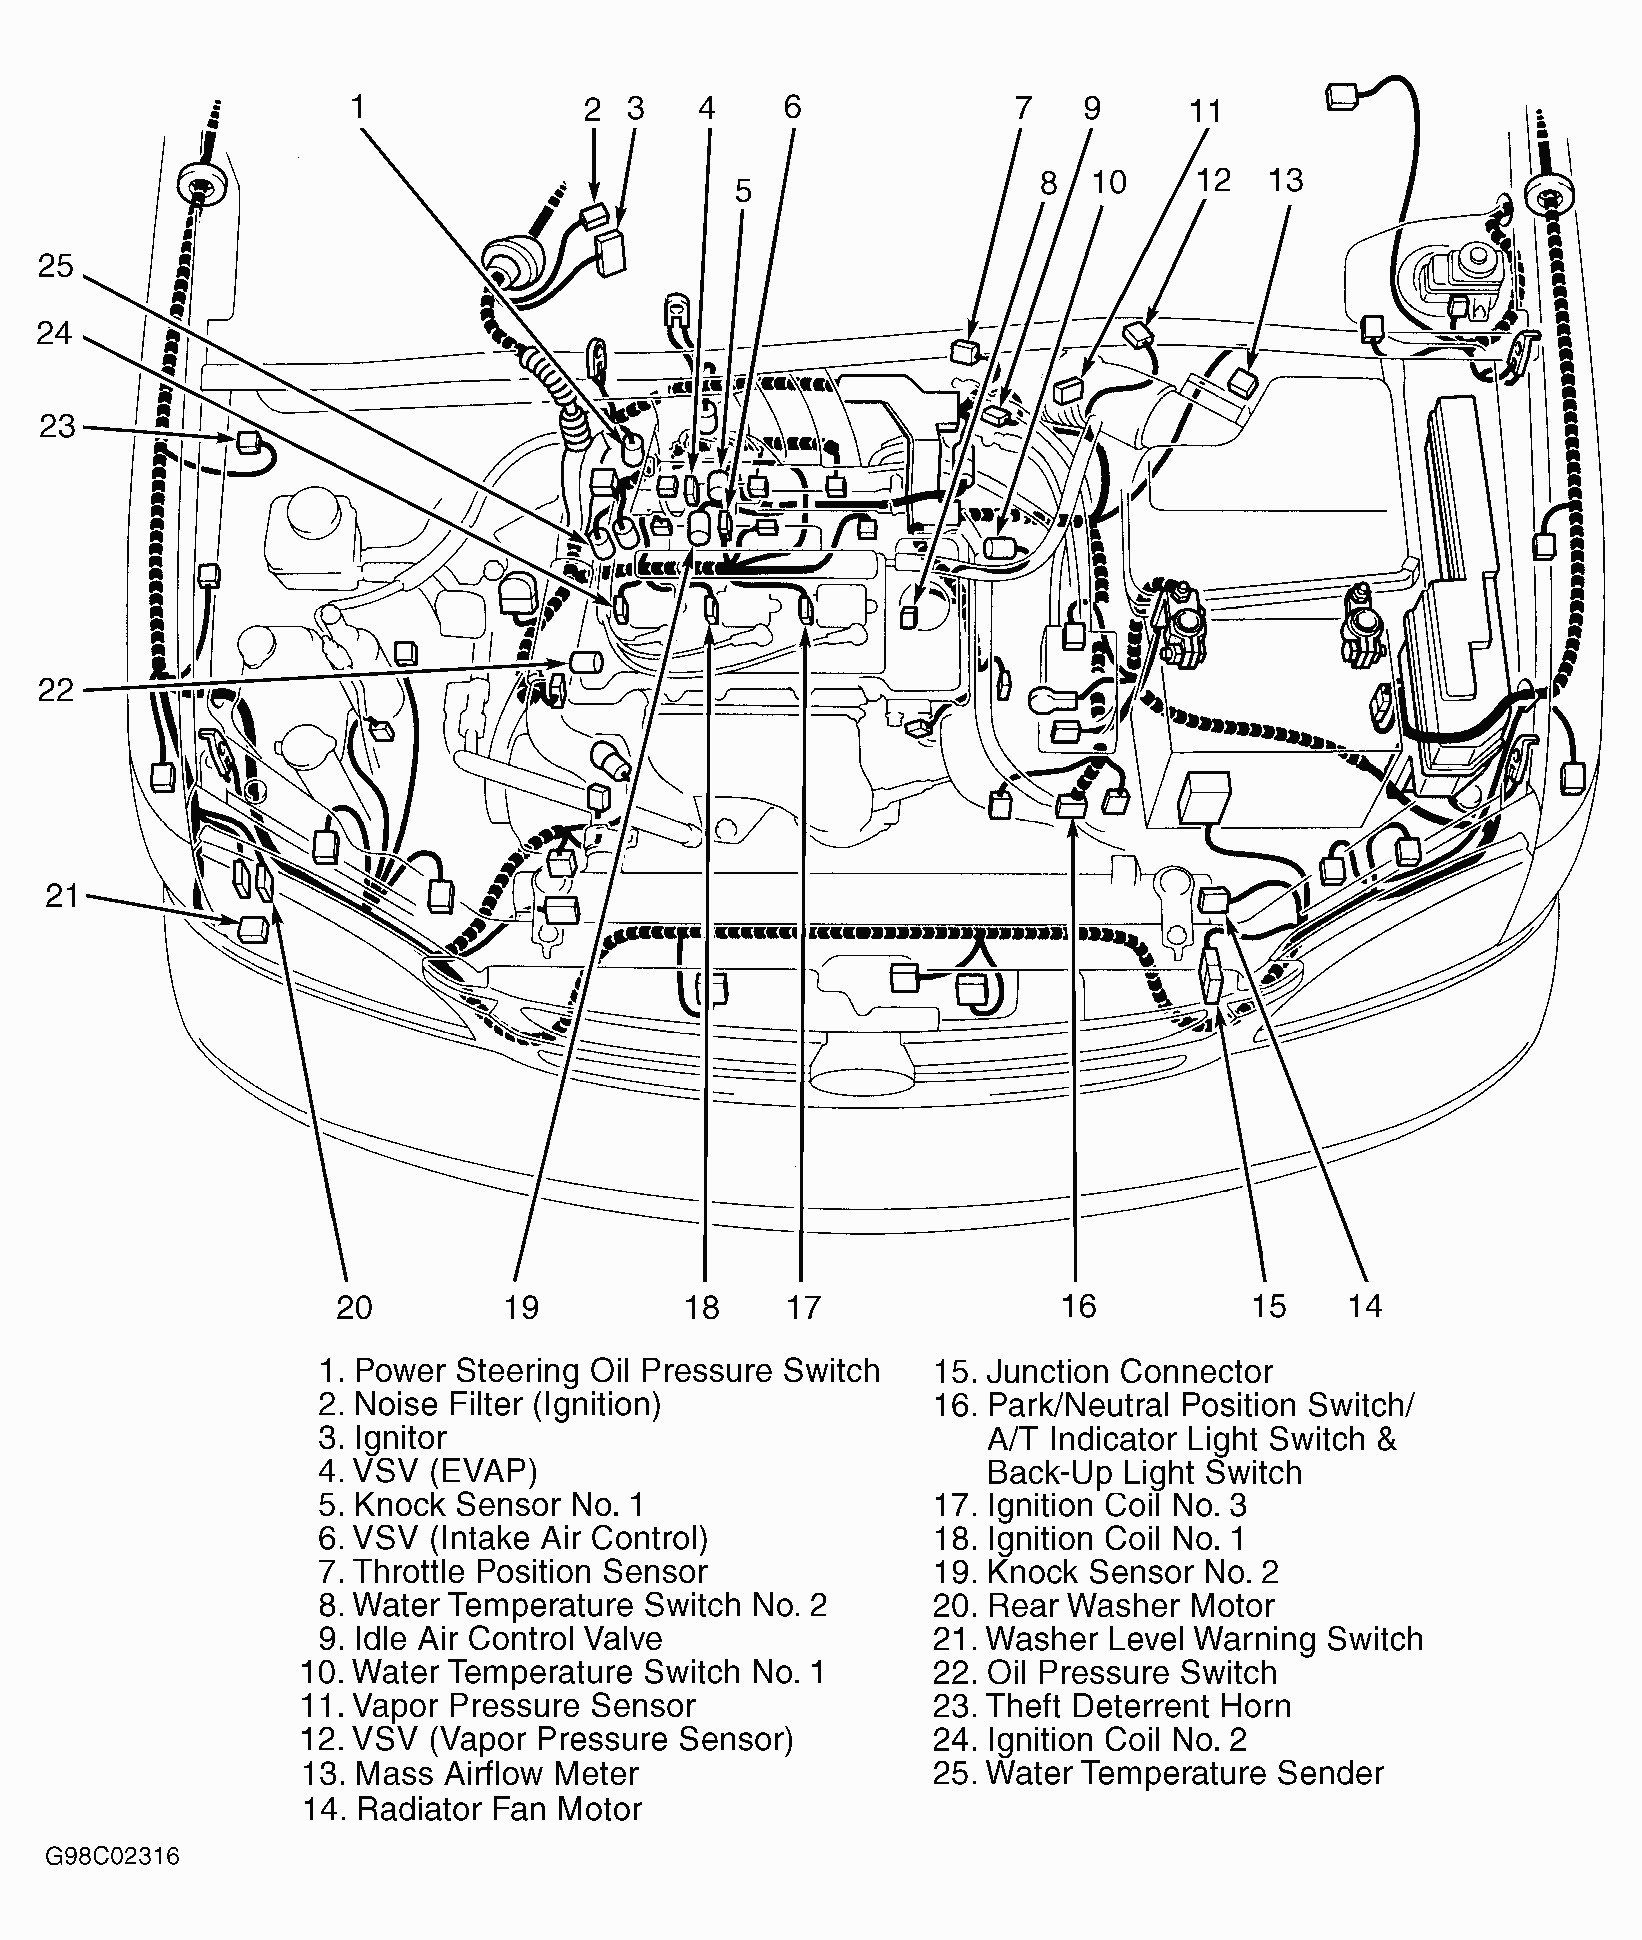 1999 Toyota Camry Engine Diagram My Wiring Diagram